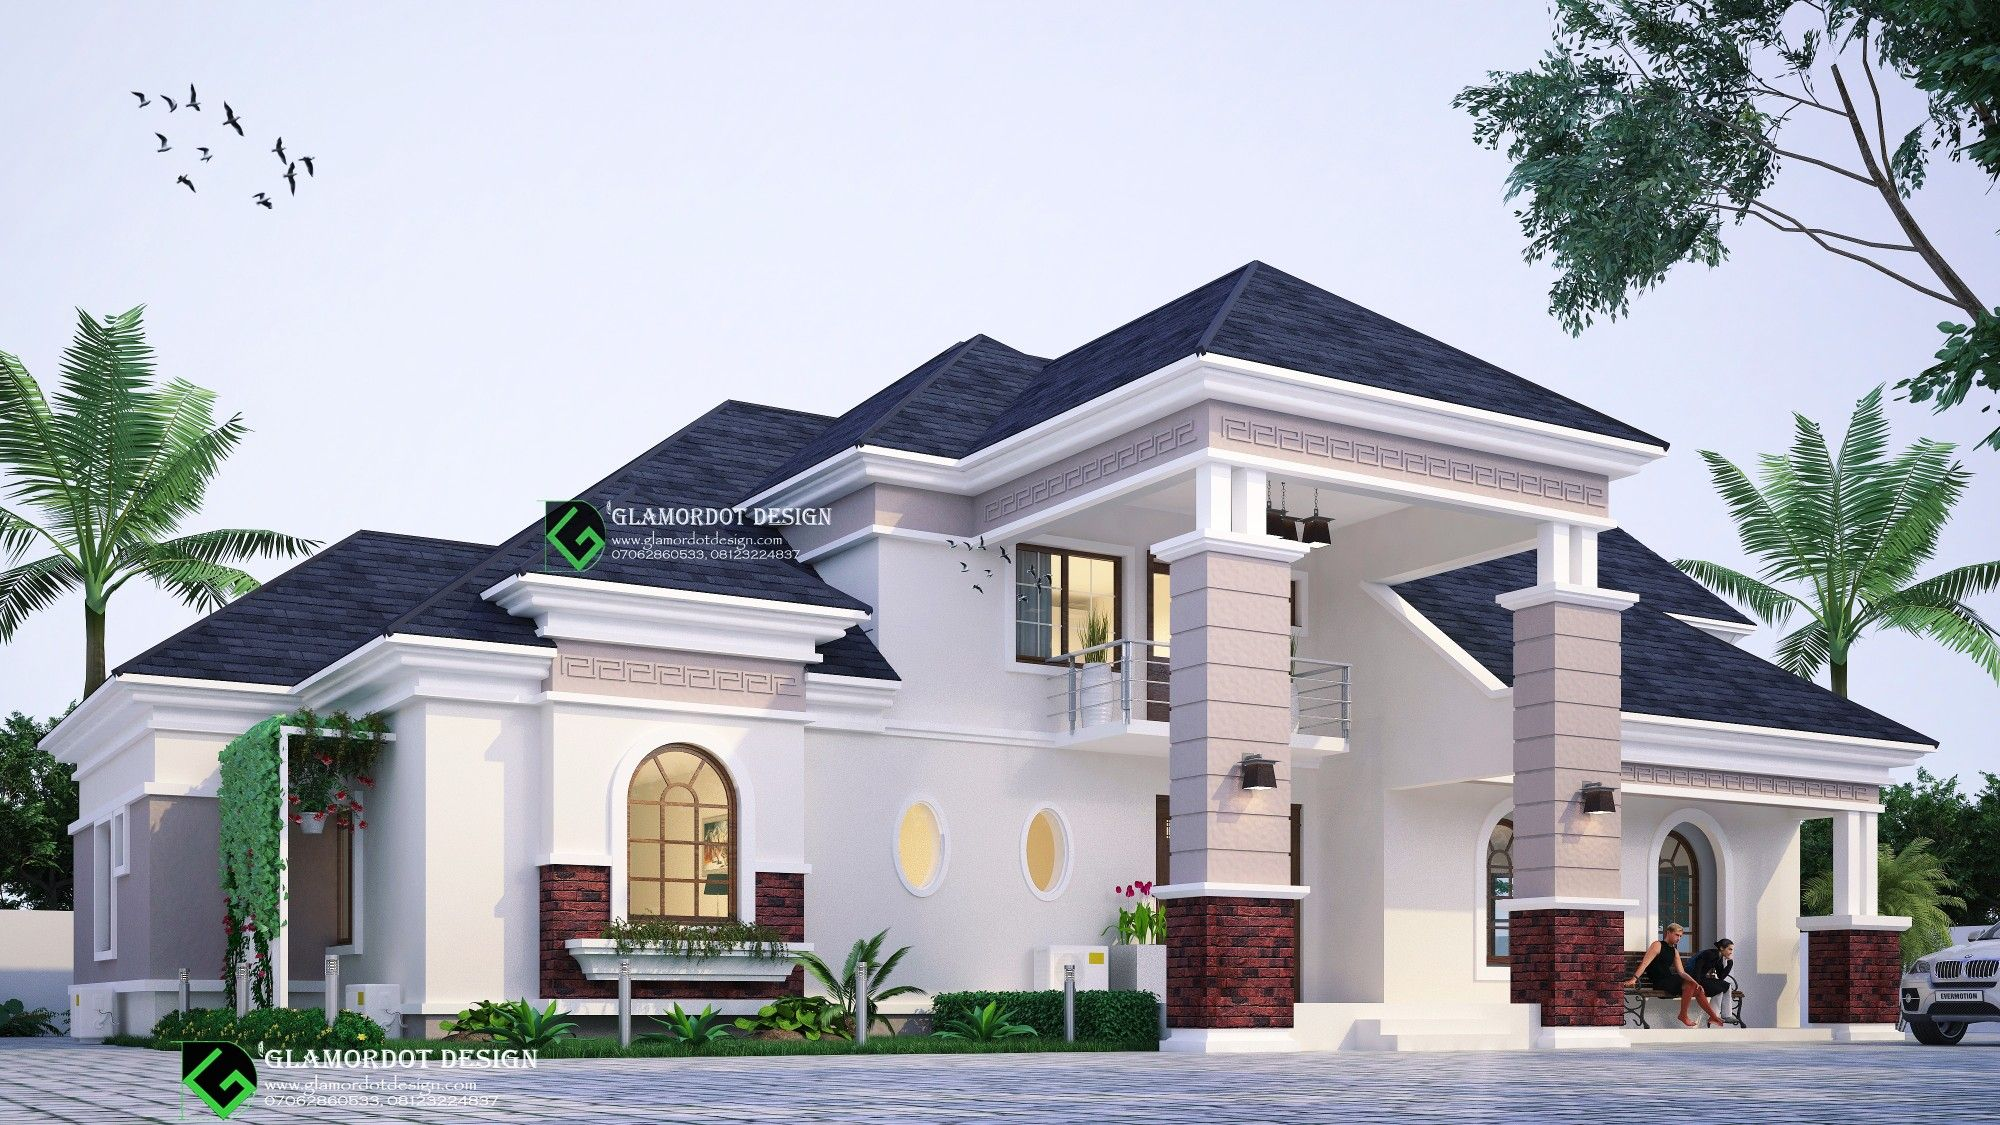 5 Bedroom Bungalow With A Penthouse Attic Space With 2 Balconies